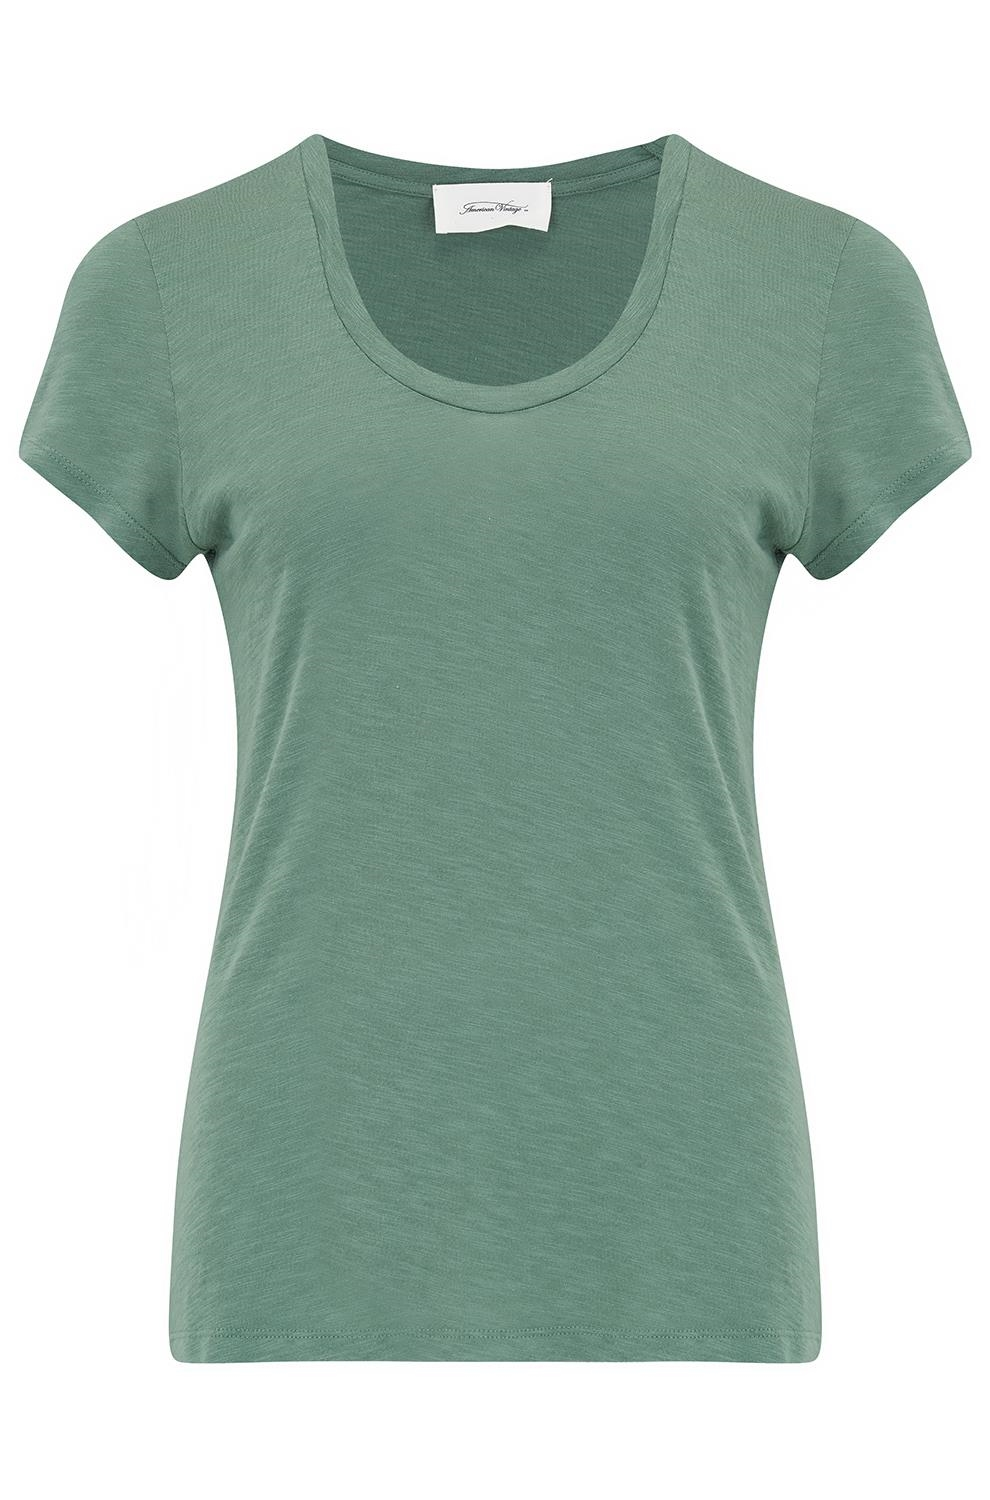 94d618c0 American Vintage Jac48 Jacksonville T-Shirt in Mojito -